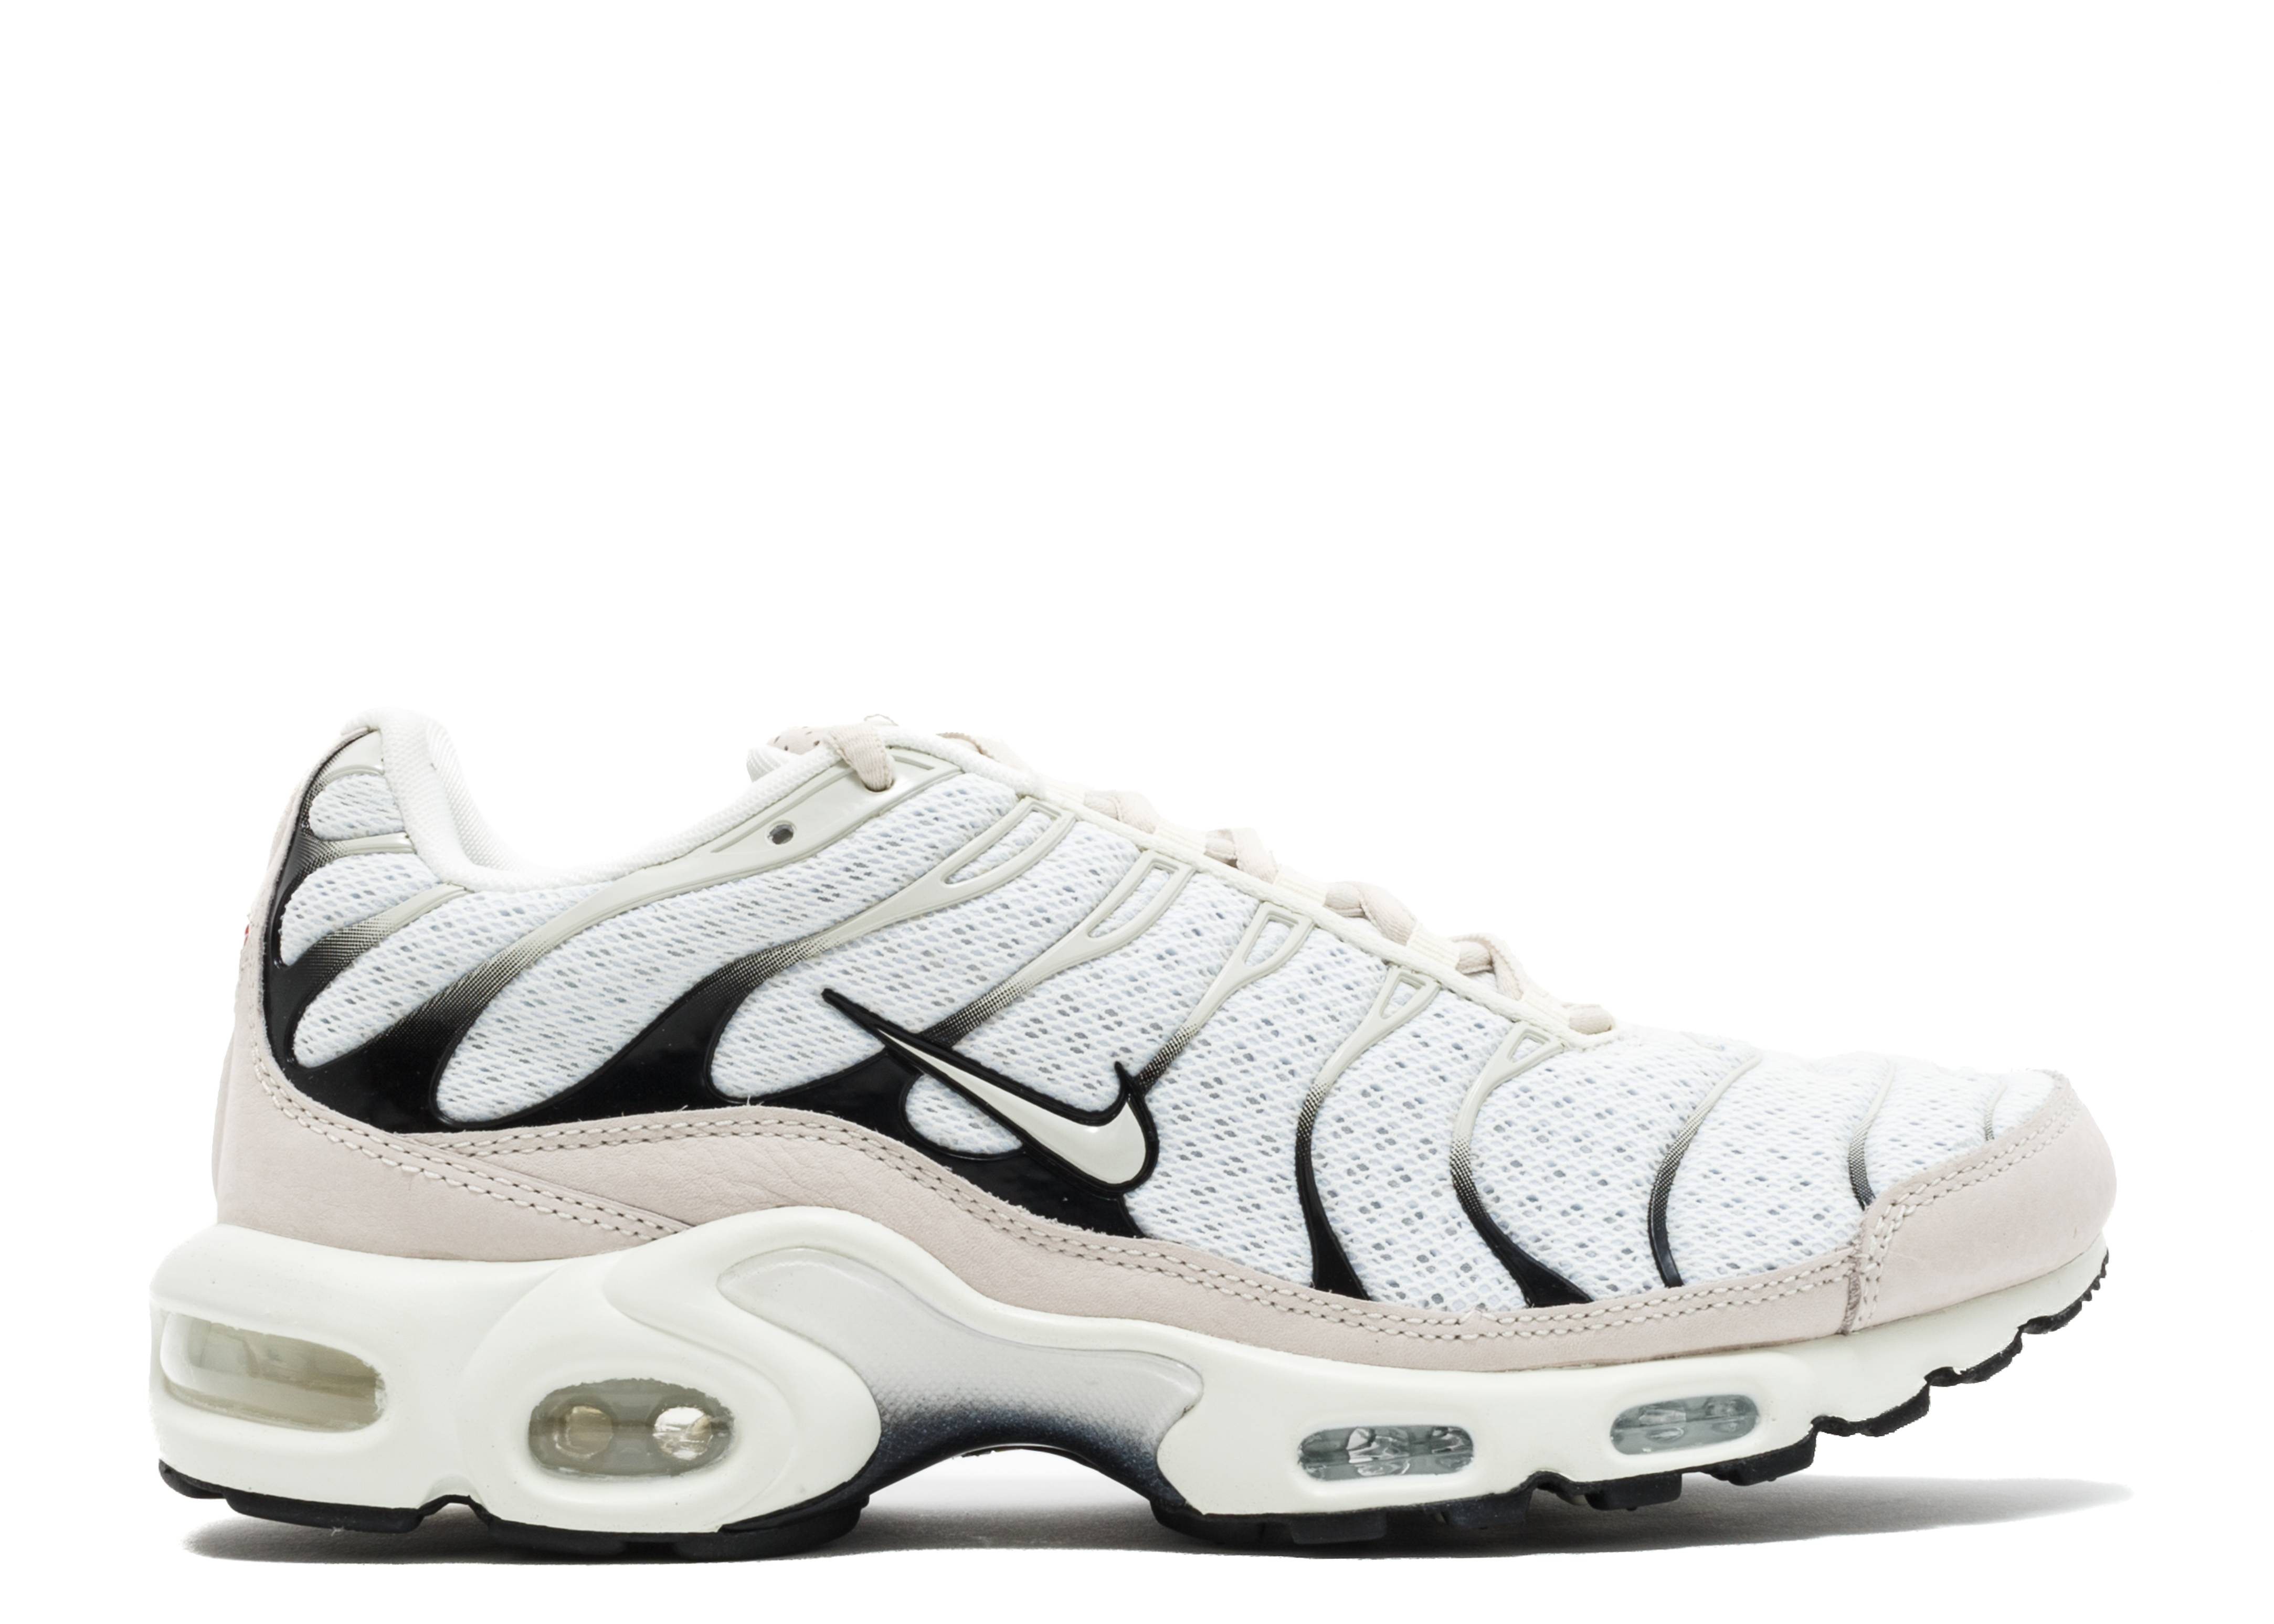 b57e1a0dd3 Nikelab Air Max Plus